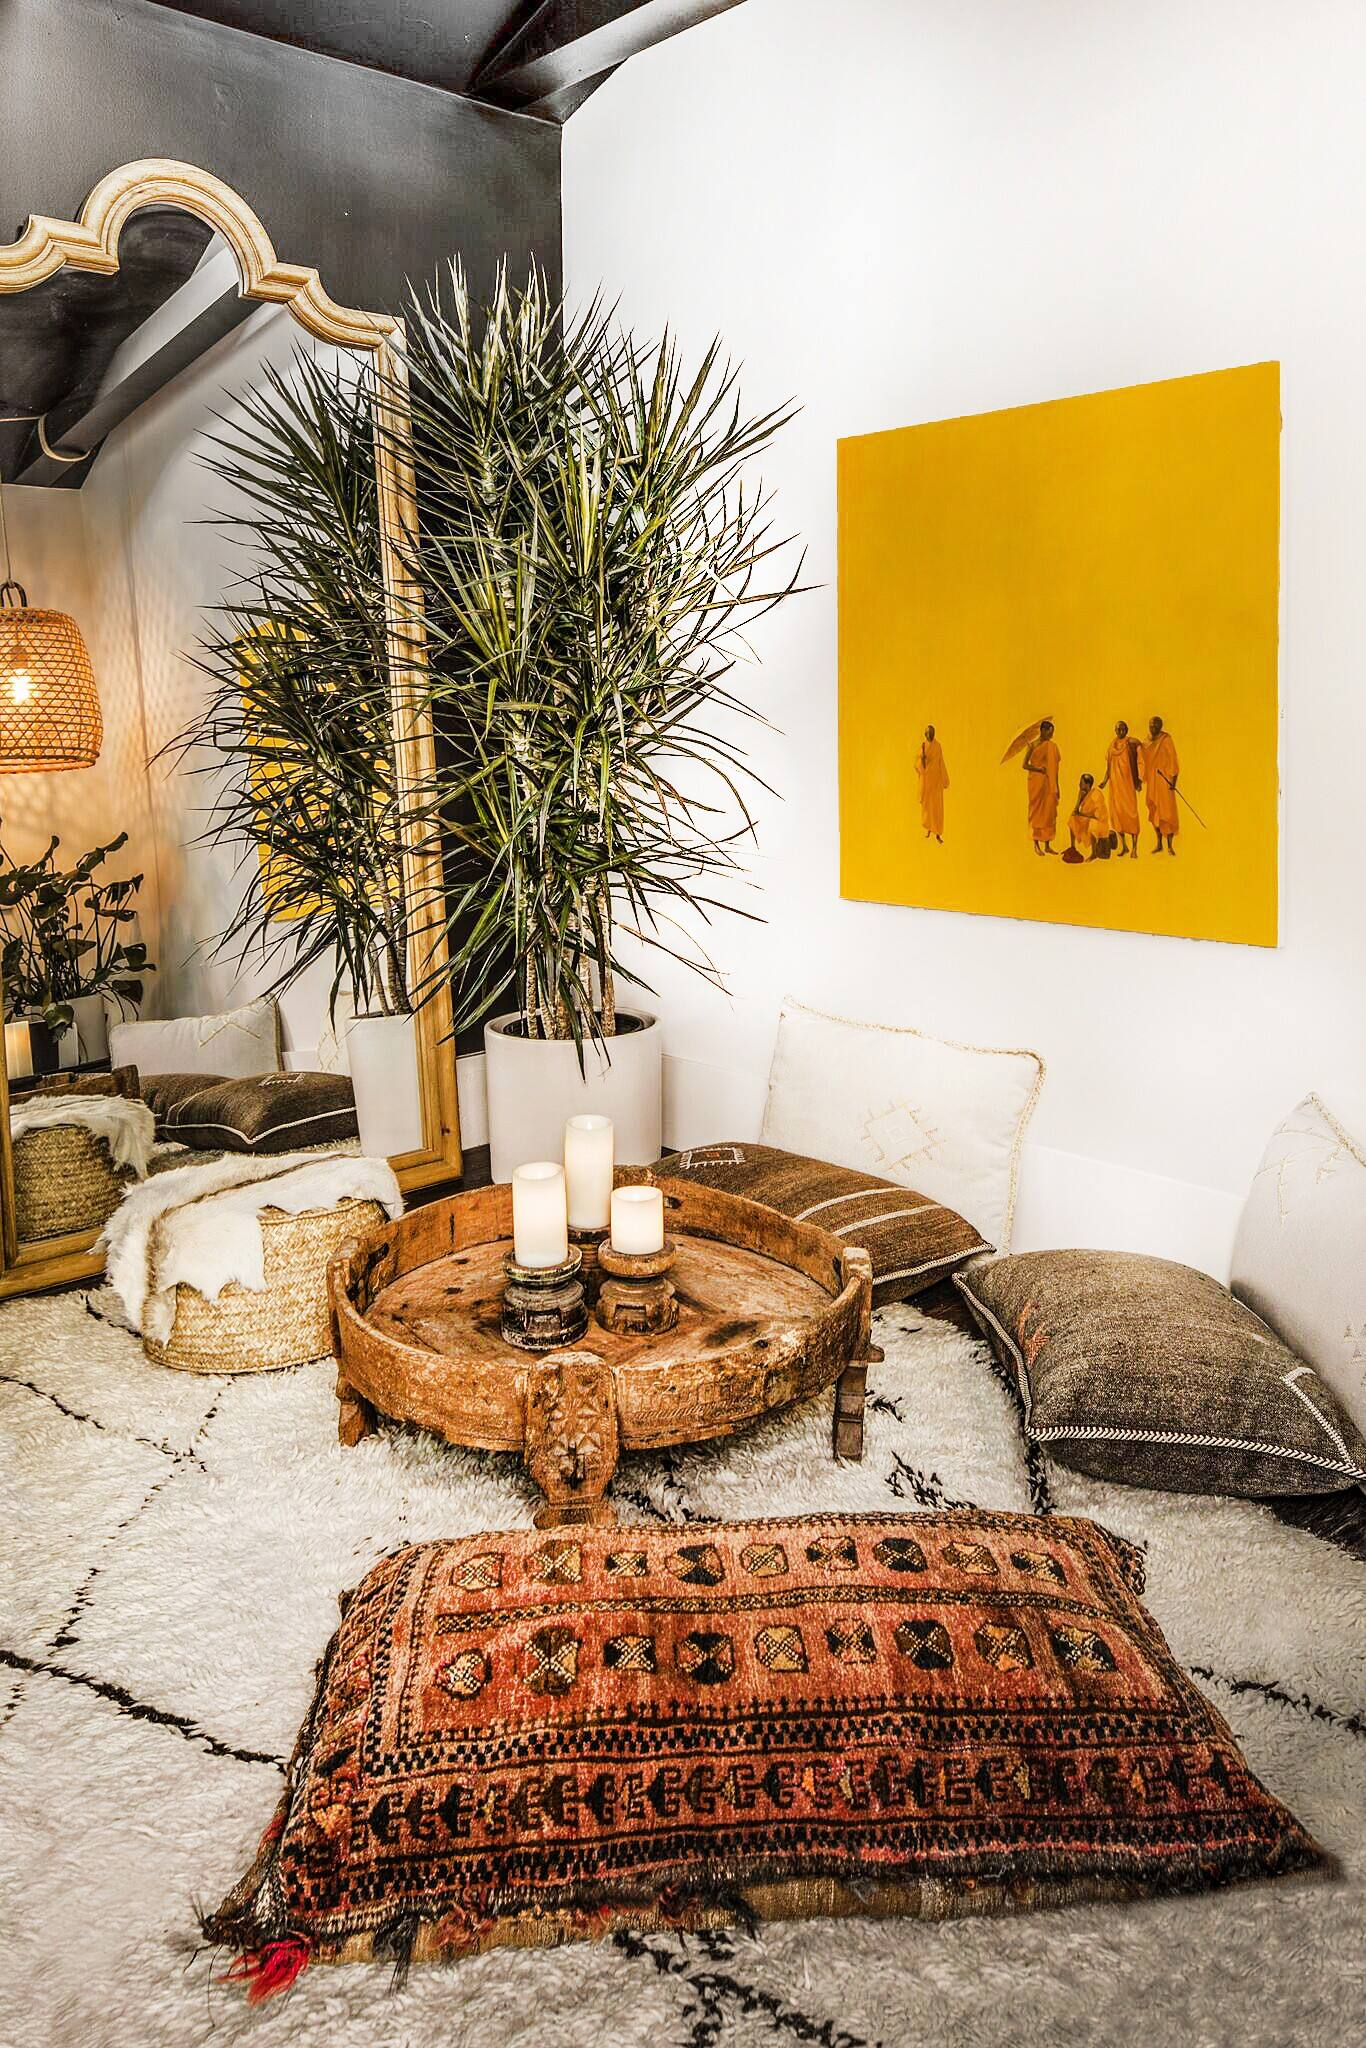 best airbnbs in los angeles, by travel blogger what the fab